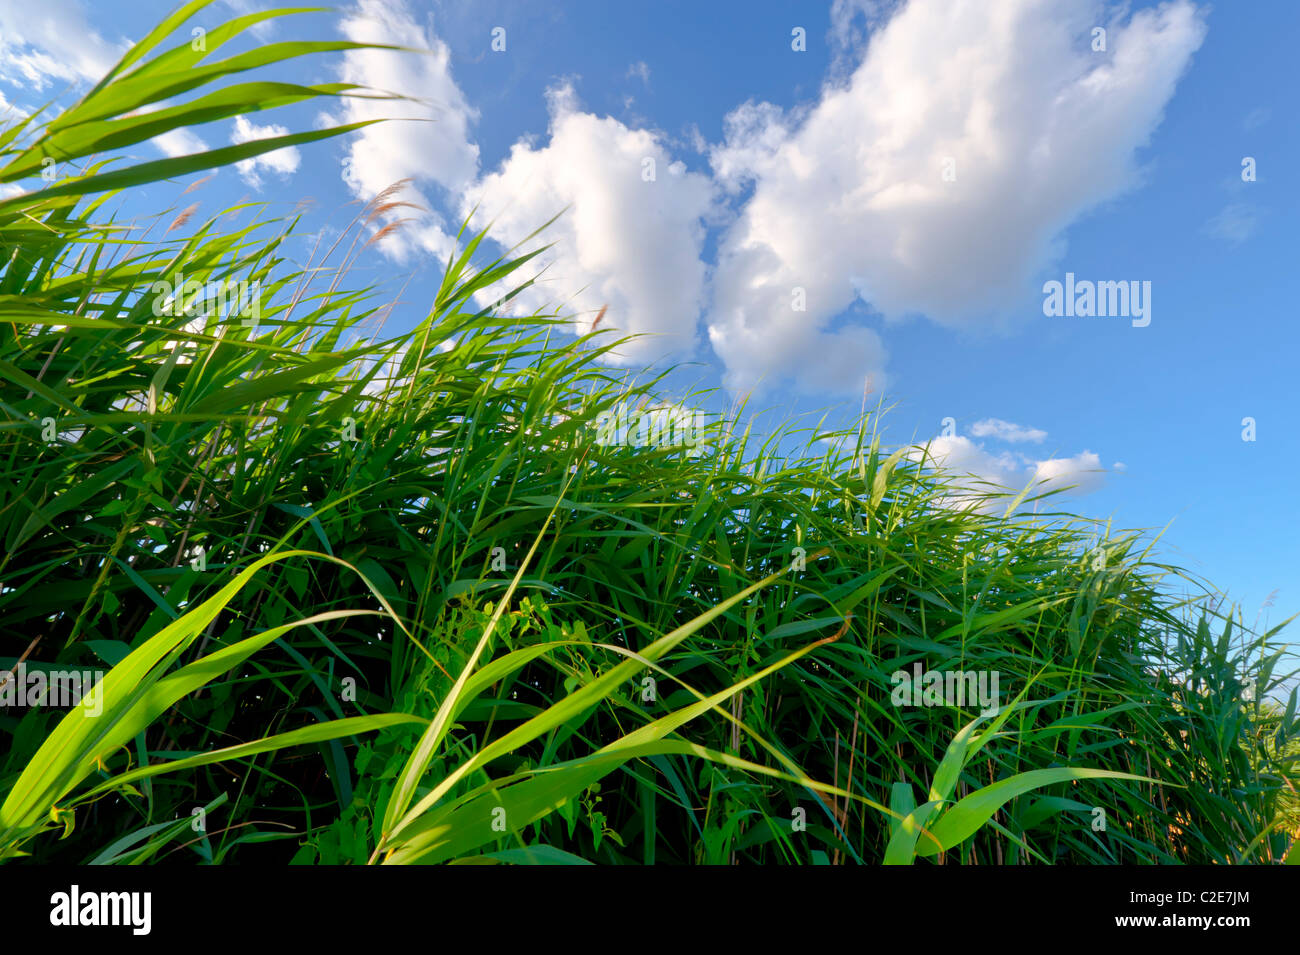 Marshland grass marsh reeds blowing in wind, closeup on beautiful summer day with blue sky, white clouds, Levy Park, - Stock Image